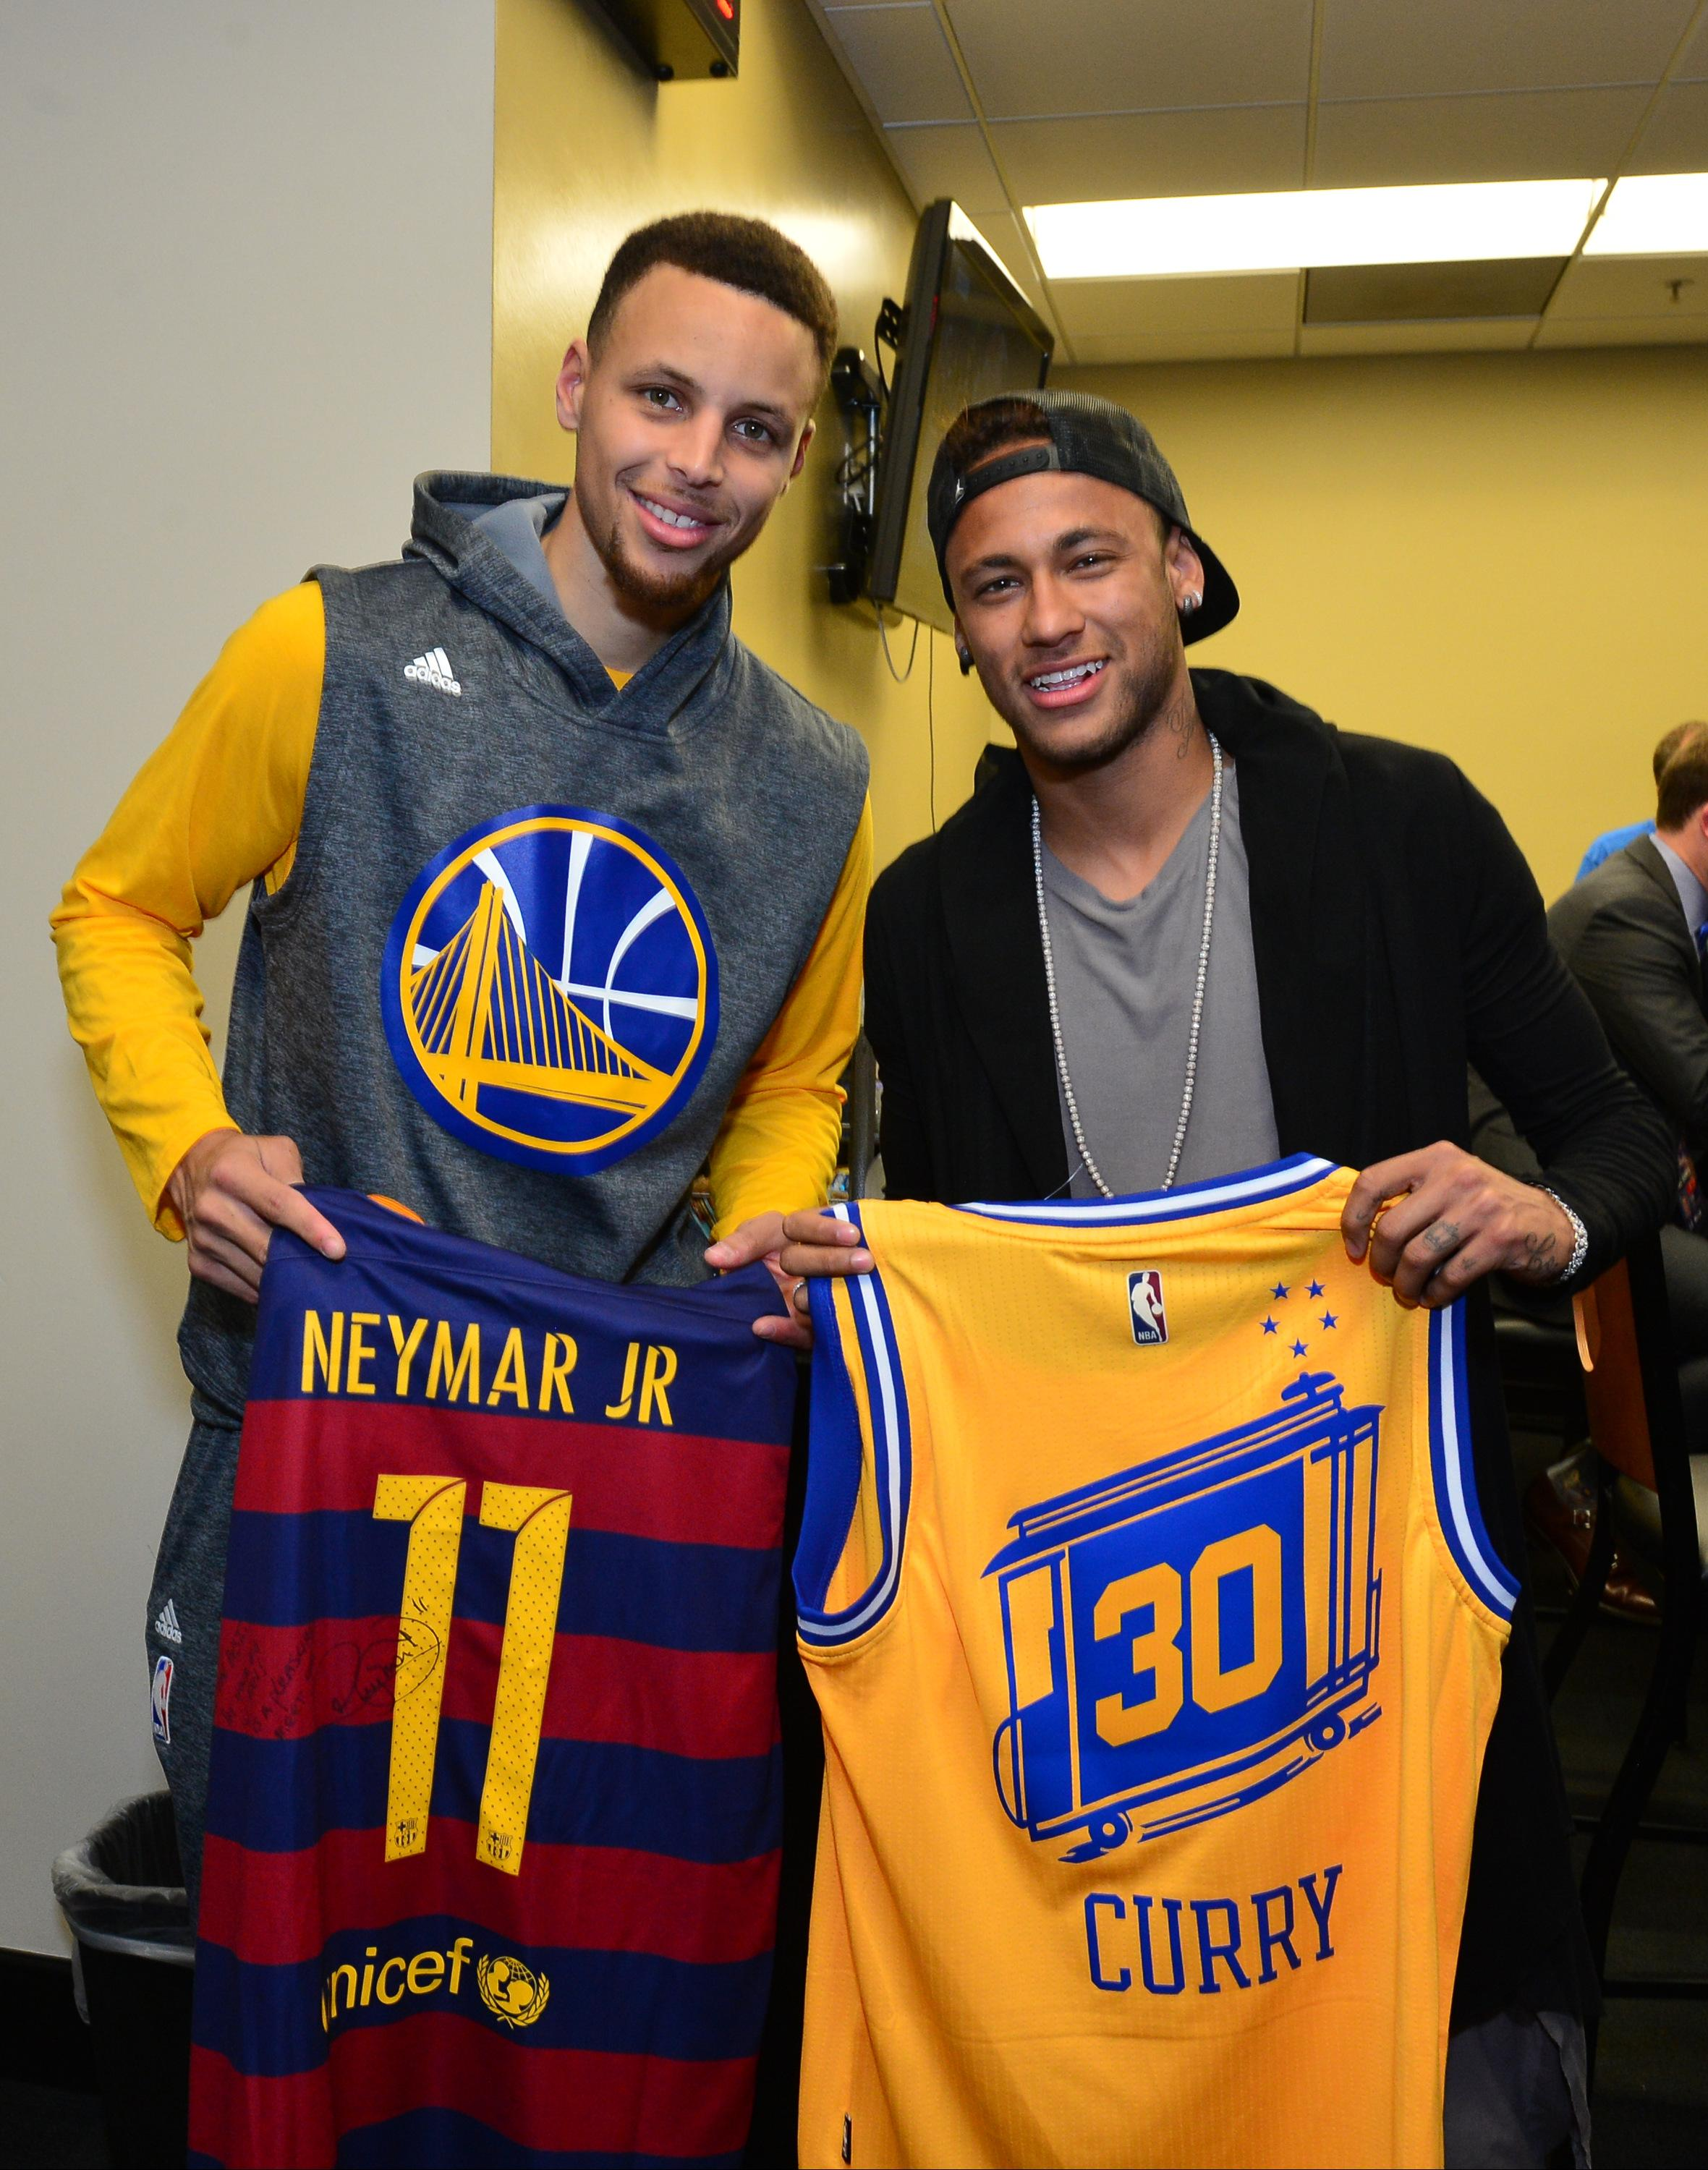 We hate to tell you this, Steph, but that Neymar Barcelona shirt isn't worth much these days